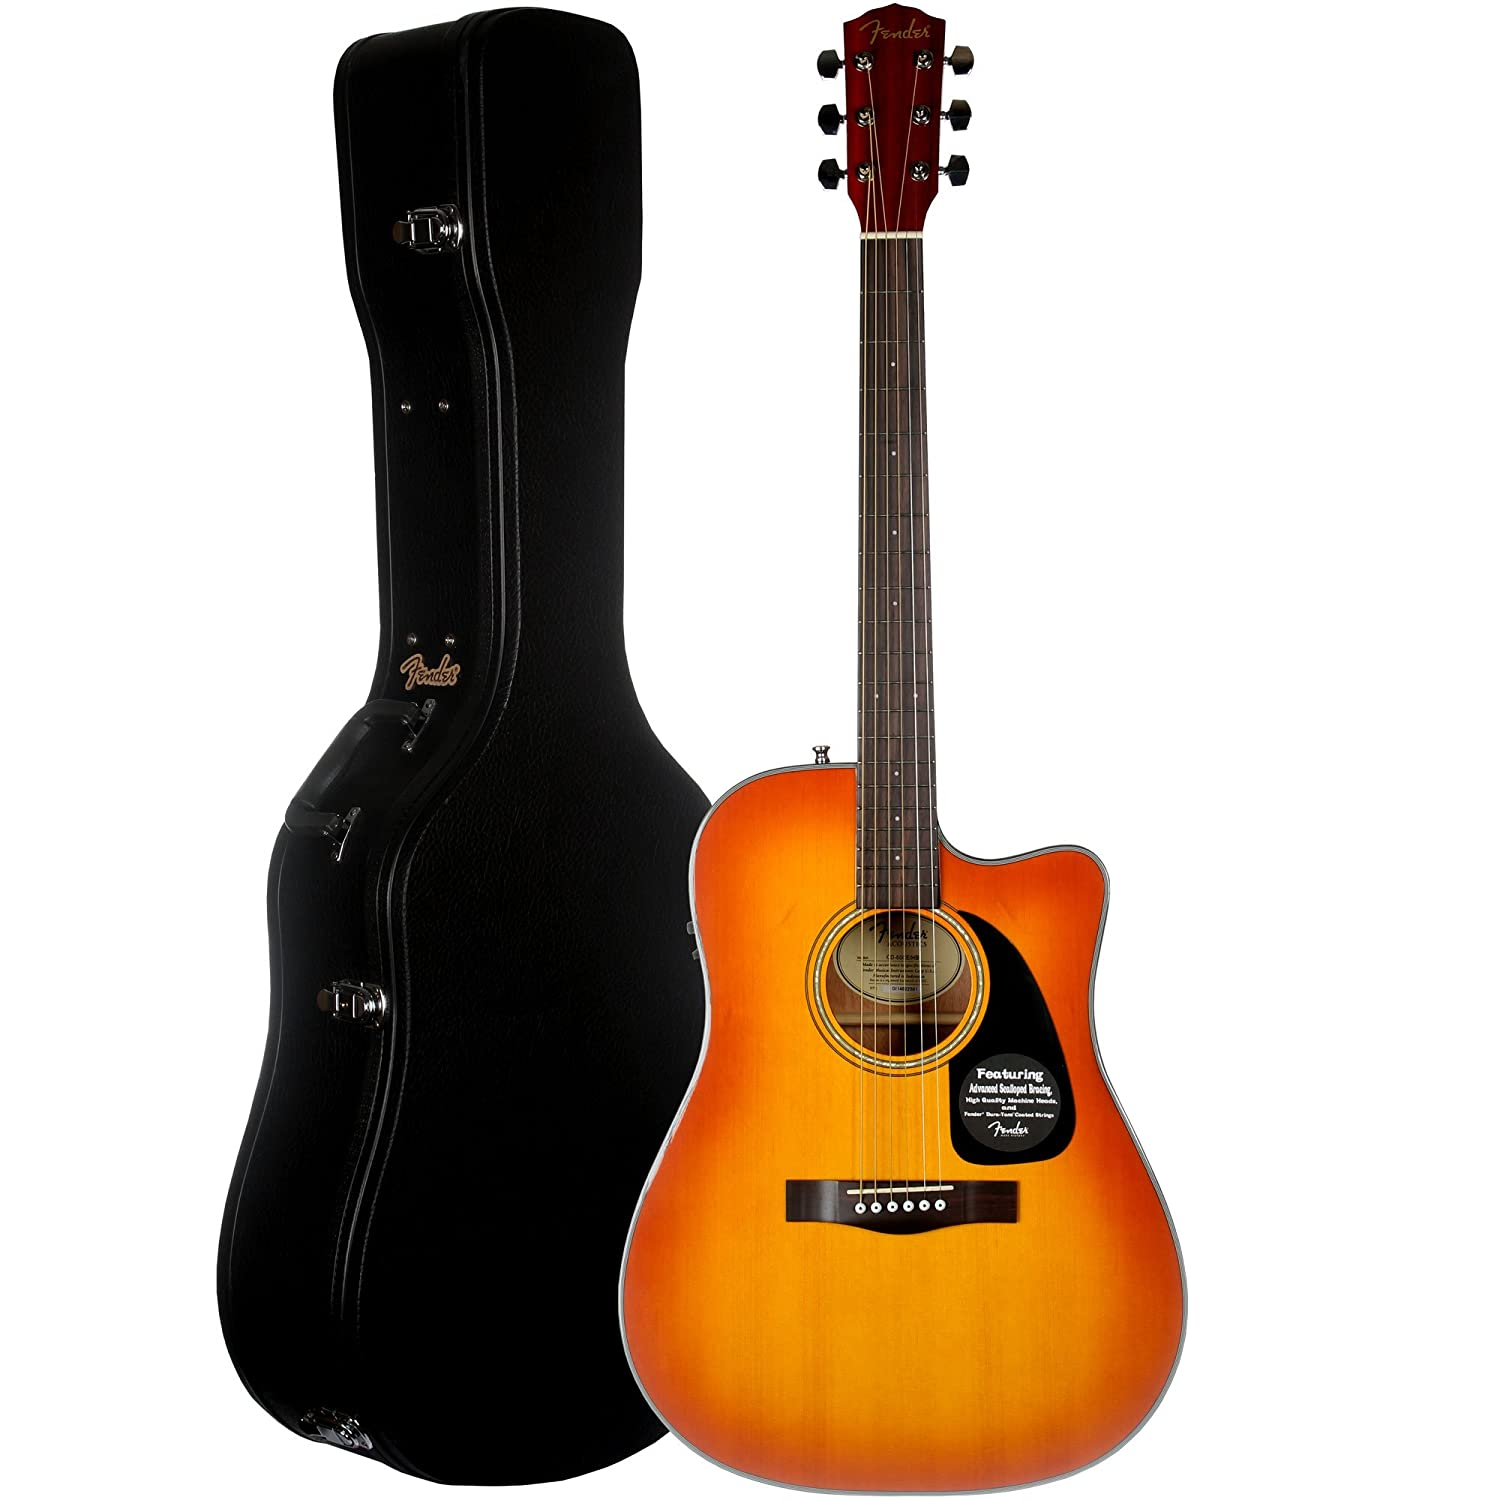 fender-yamaha-and-seagull-comparing-the-three-acoustic-guitar-brands-1